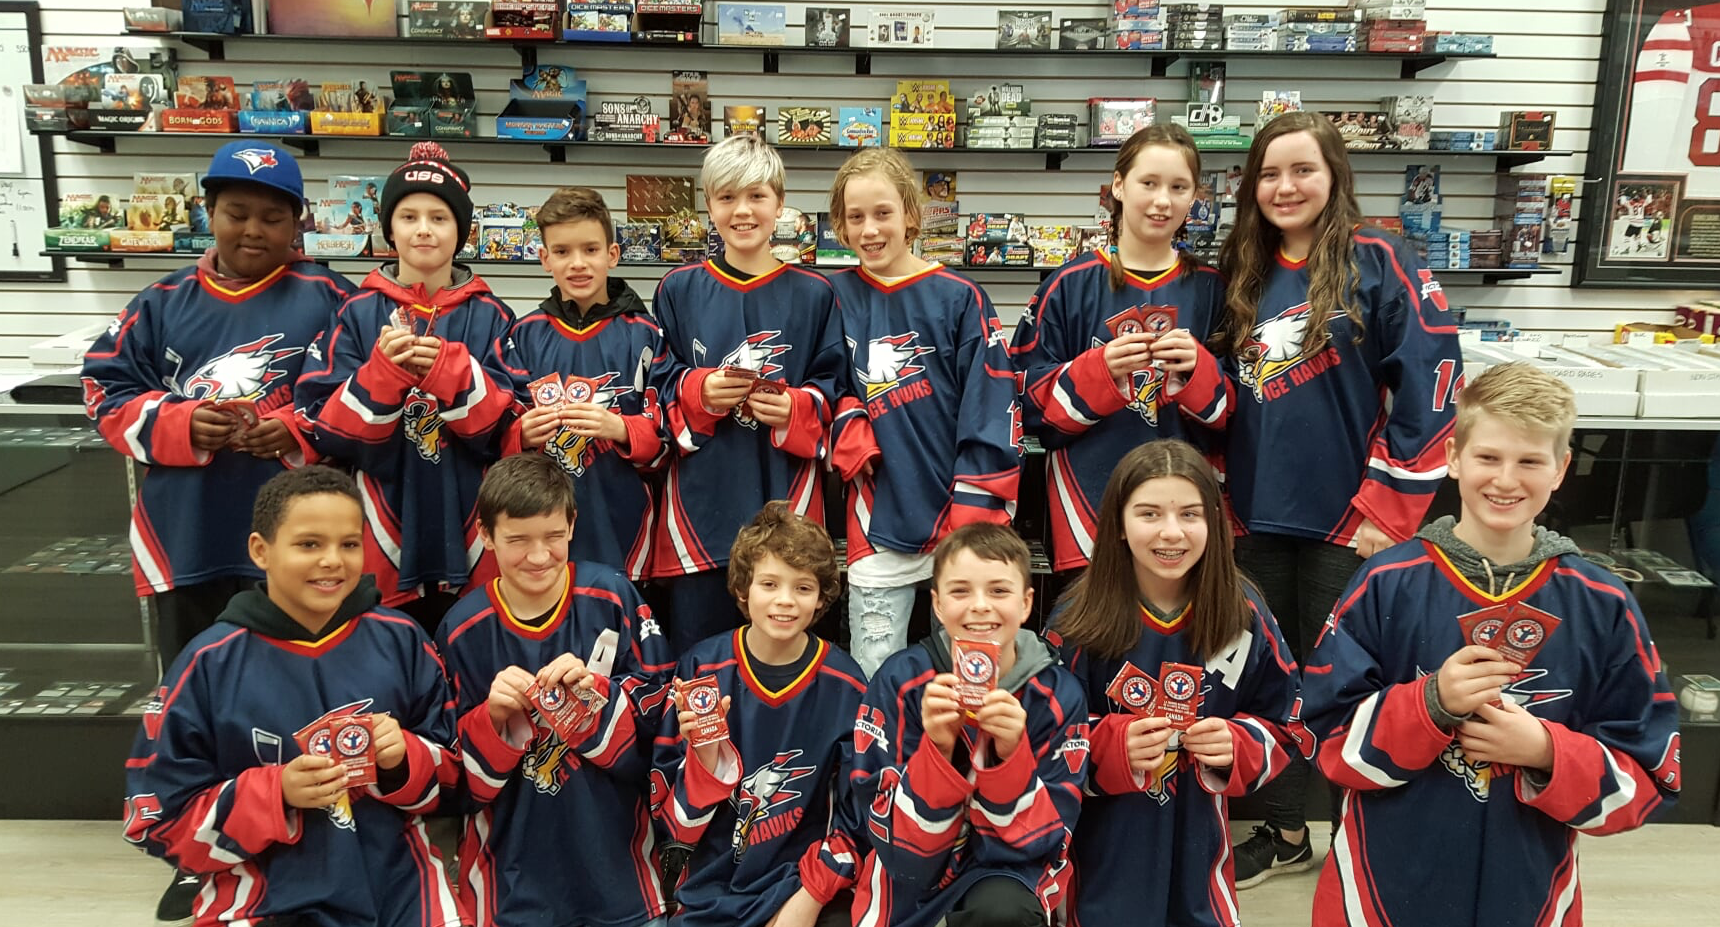 Triple Play Sports Cards, Victoria, BC - Youth Sponsorship!